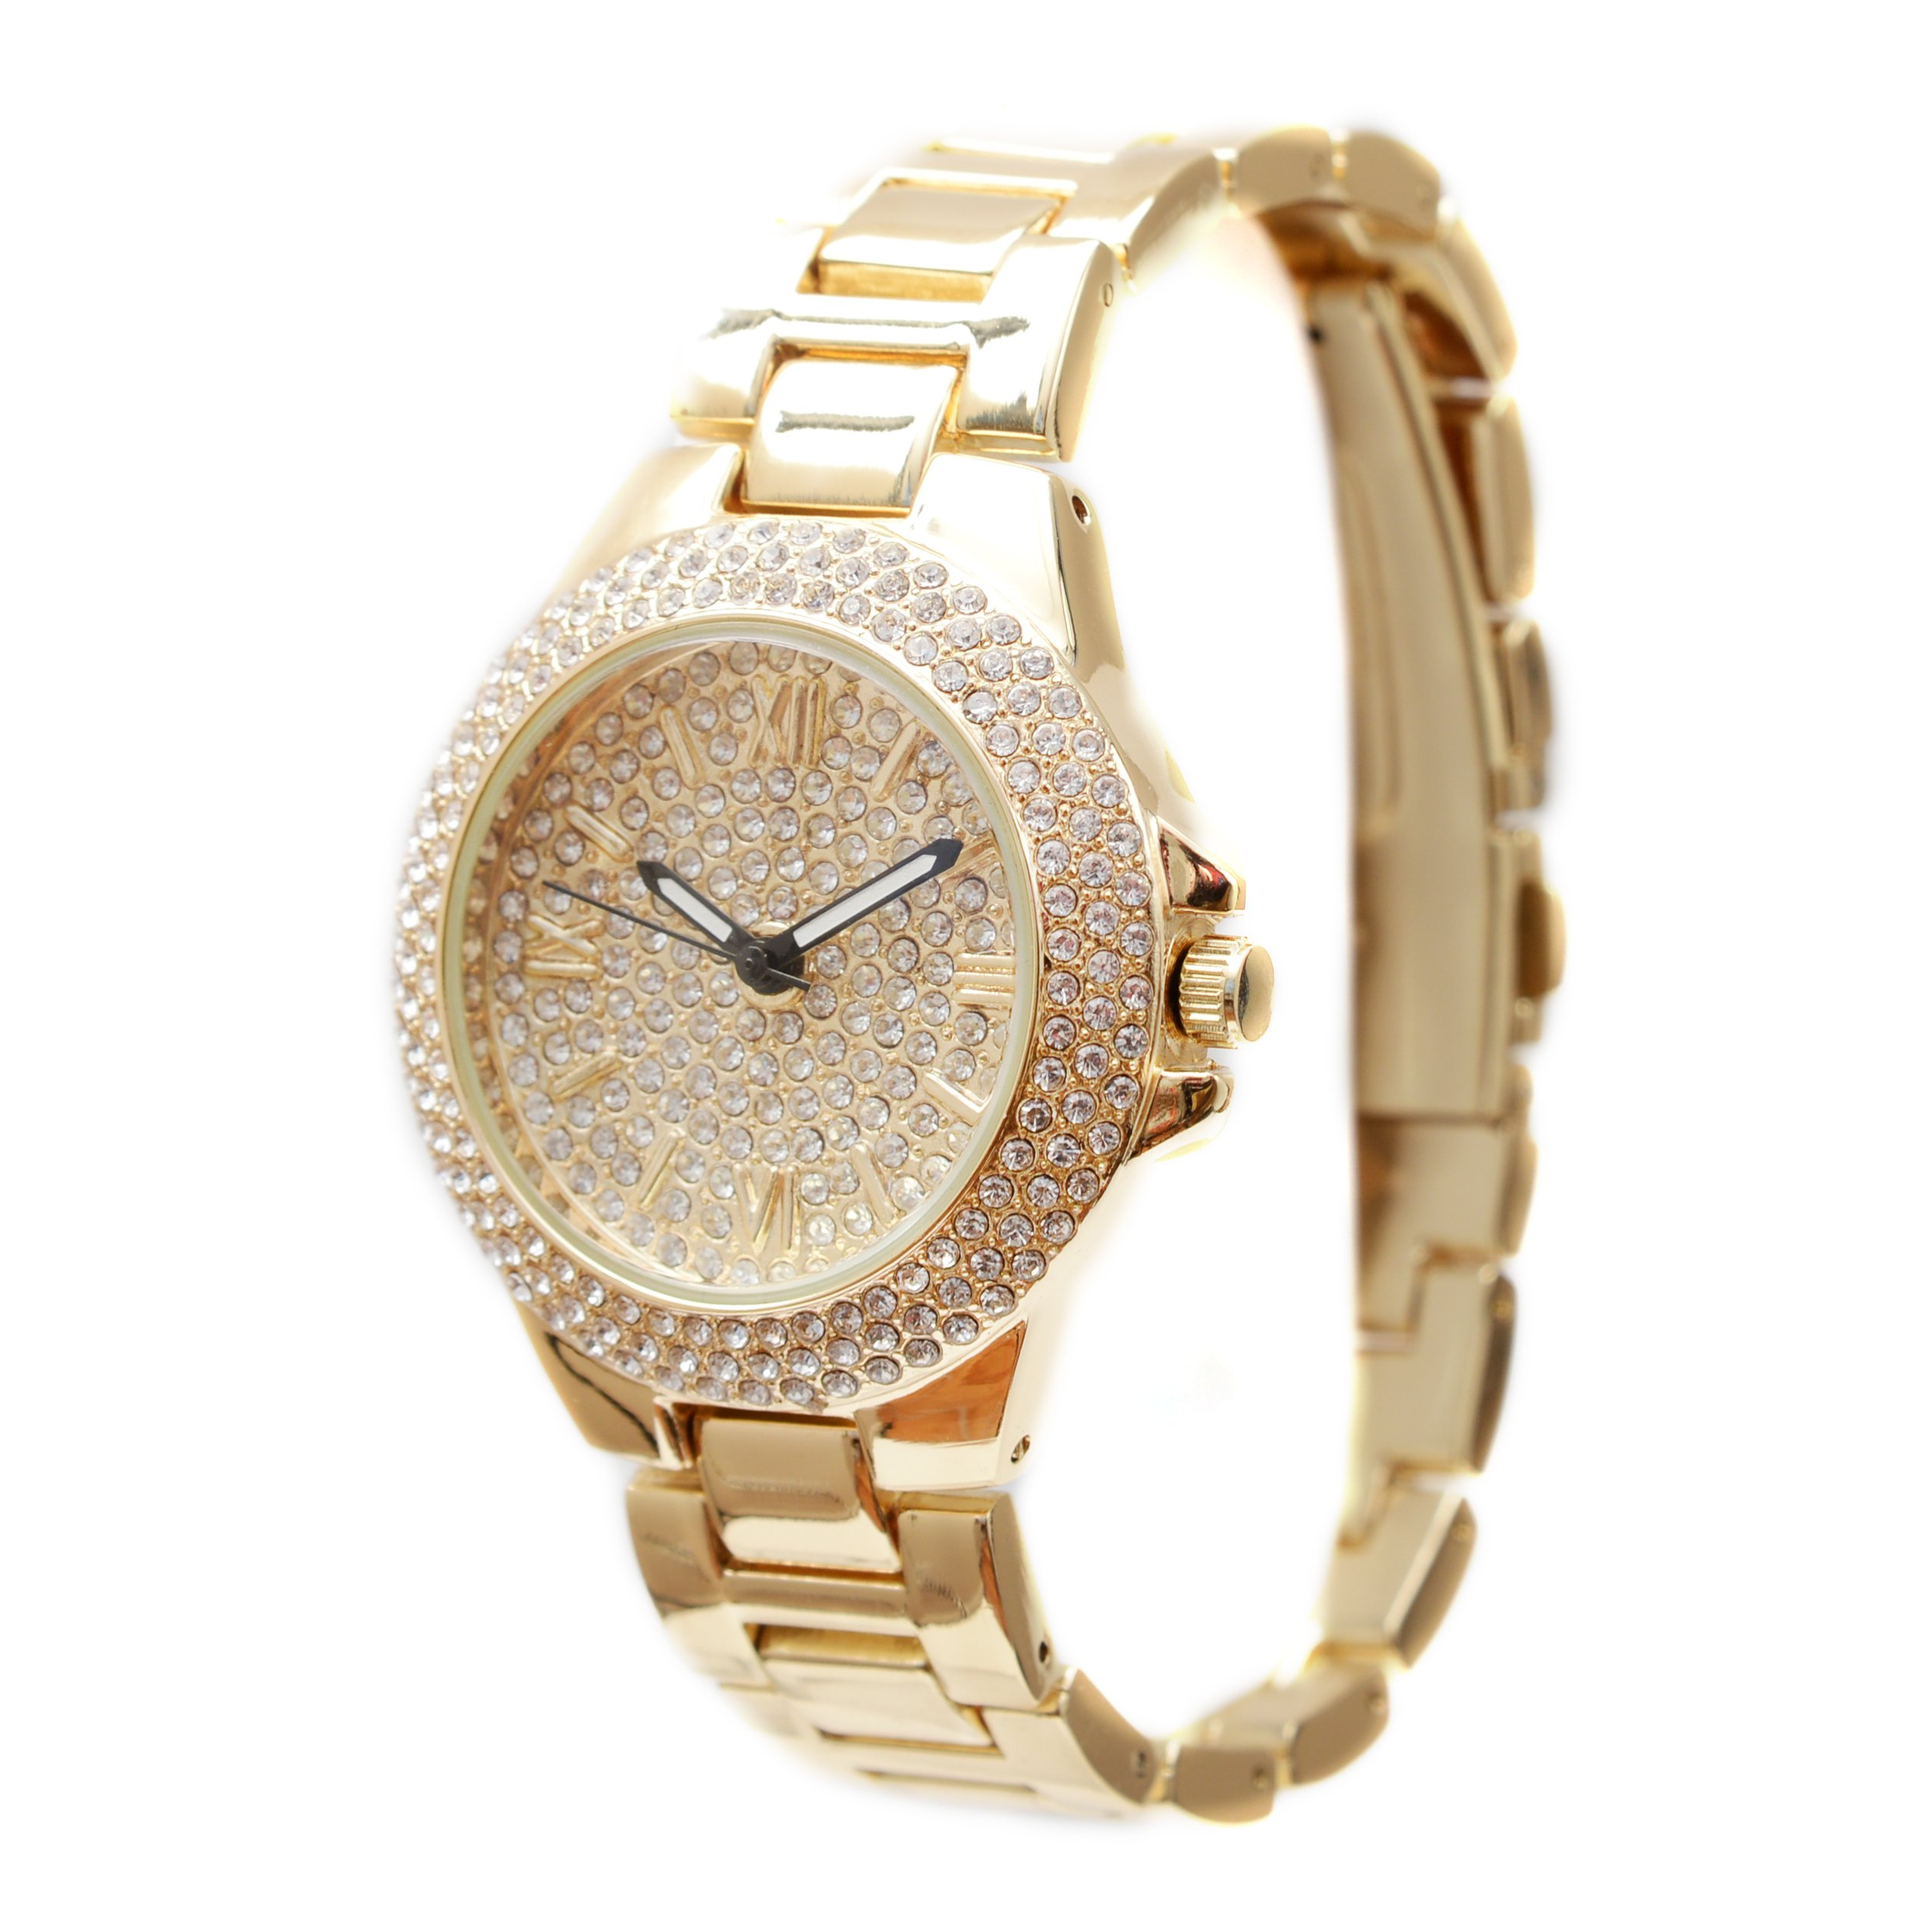 Ladies Dainty Beautiful Hip Hop Bling Bling Watch with Jesus Ruby Red Charm Necklace and Matching Gold Jesus Earrings - RRR11A -7841 Gold Jesus Set